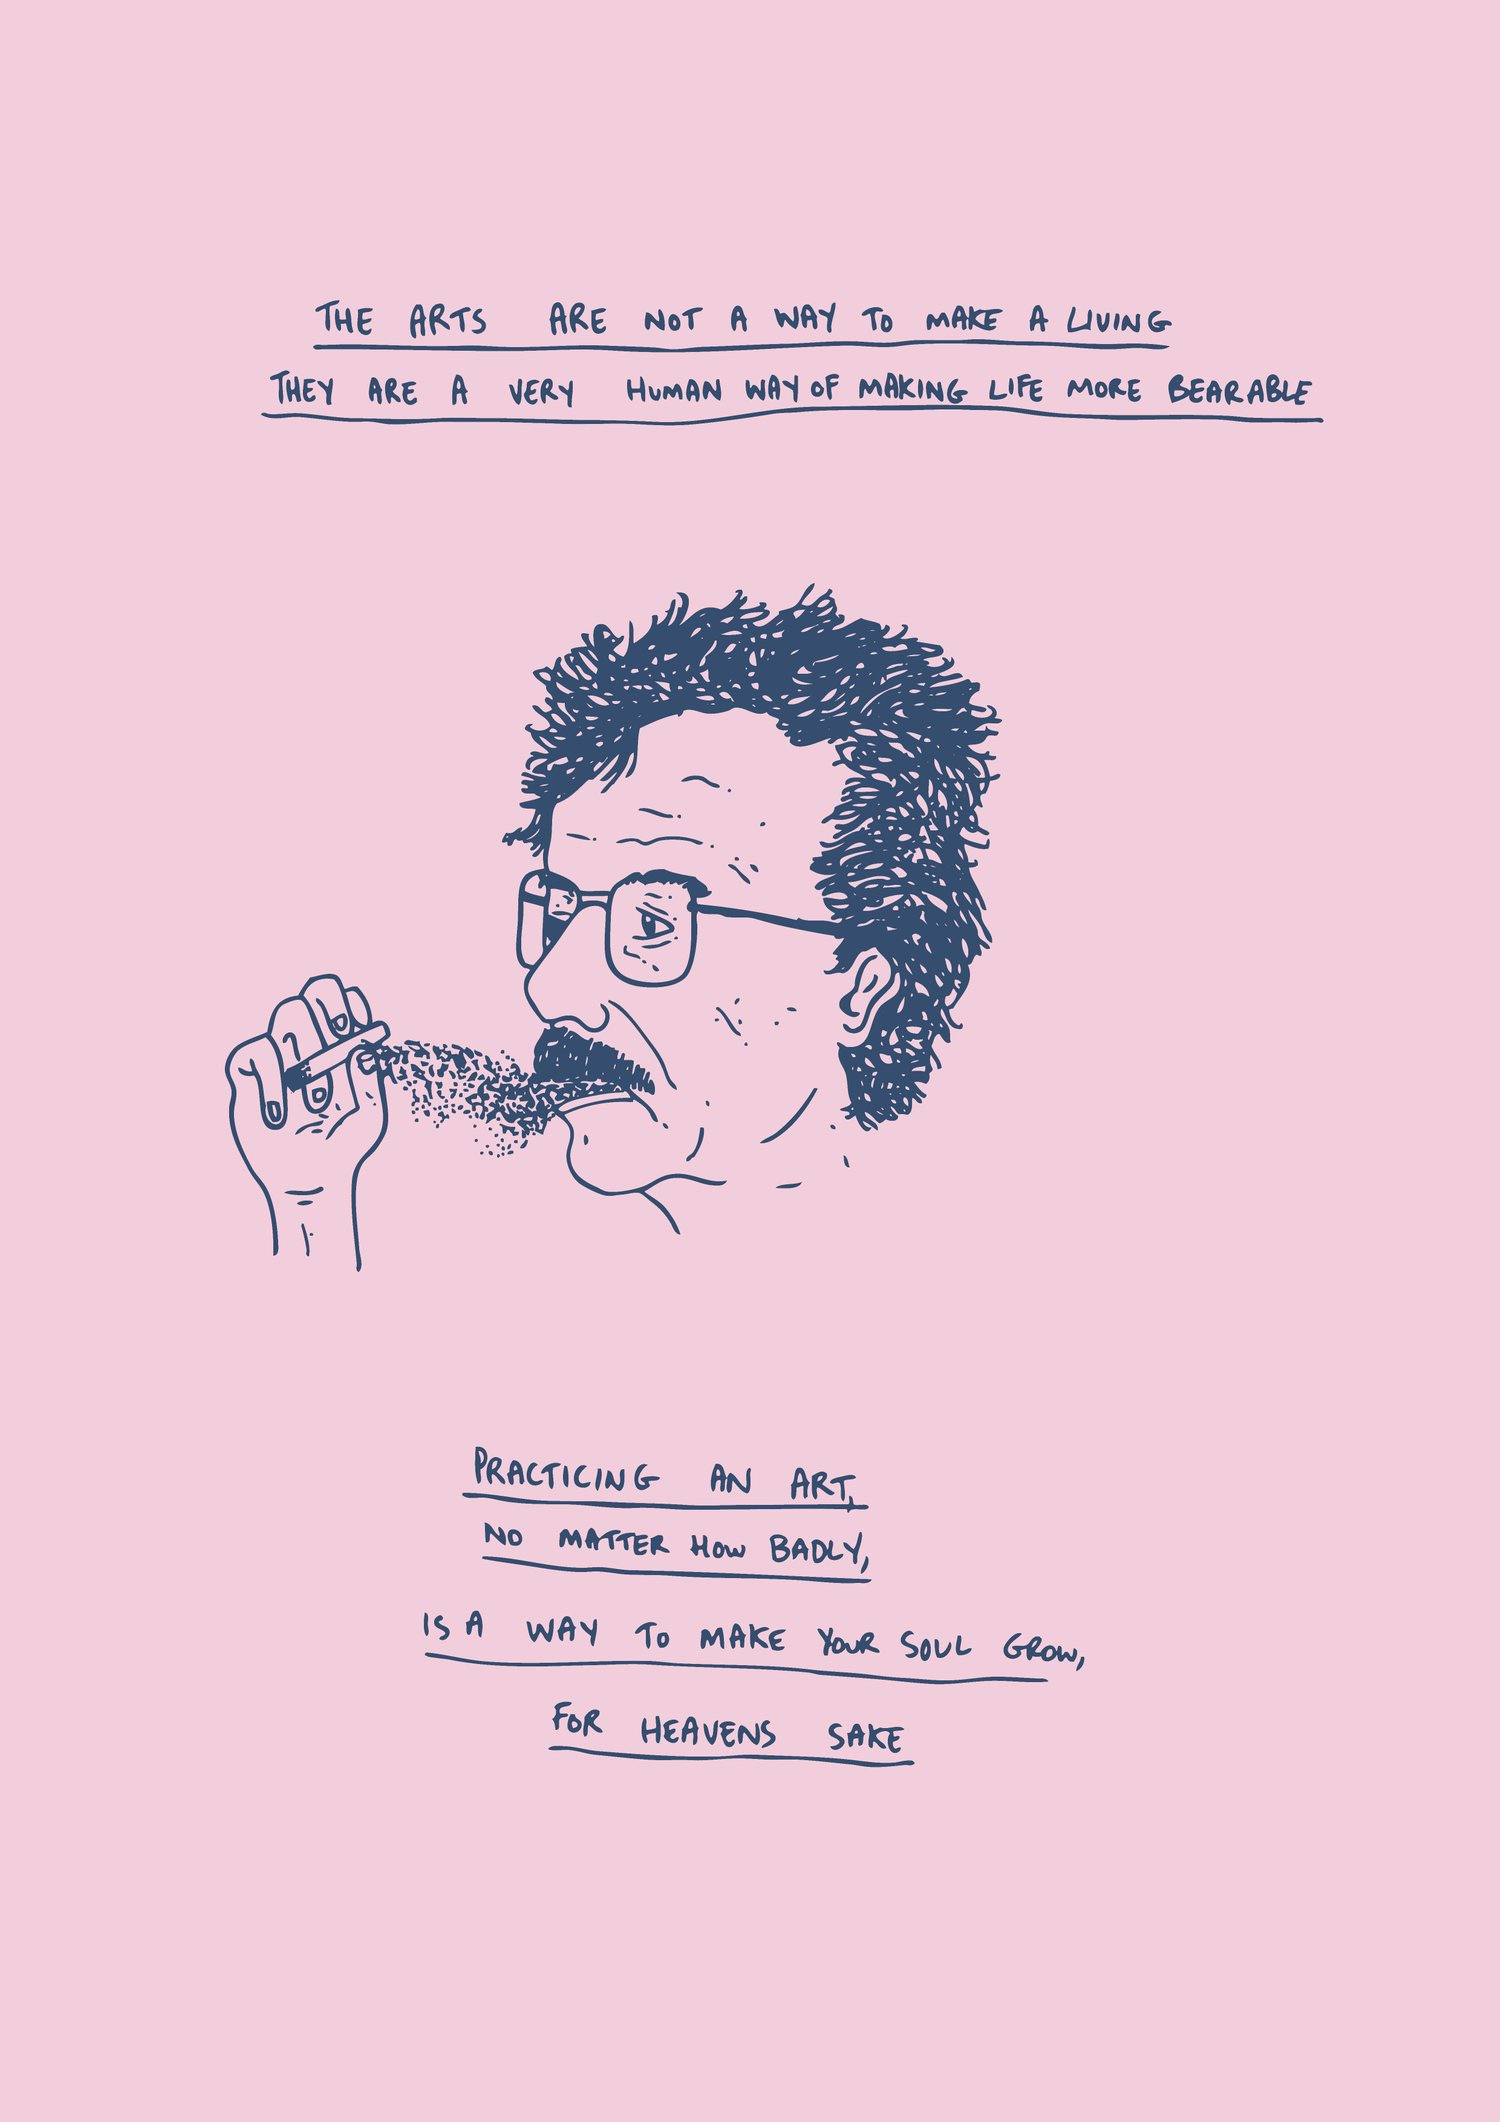 Kurt Vonnegut – The arts are not a way to make a living, they are a very human way of making life more bearable… [728×1030]